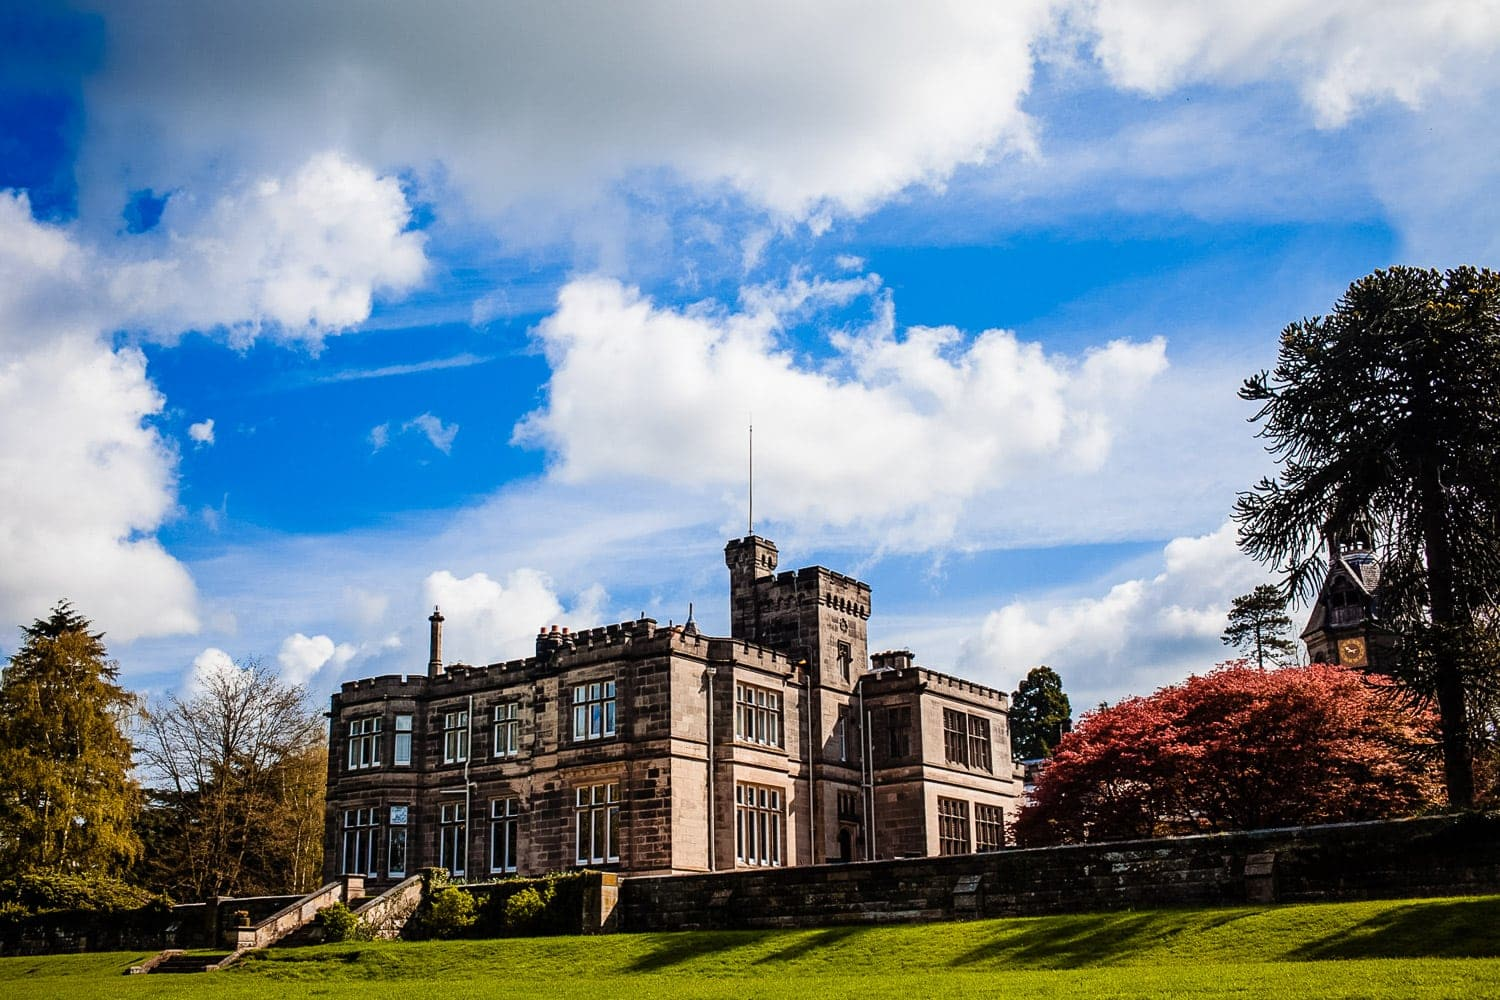 Hampton Manor rates high in a list of top midlands wedding venues